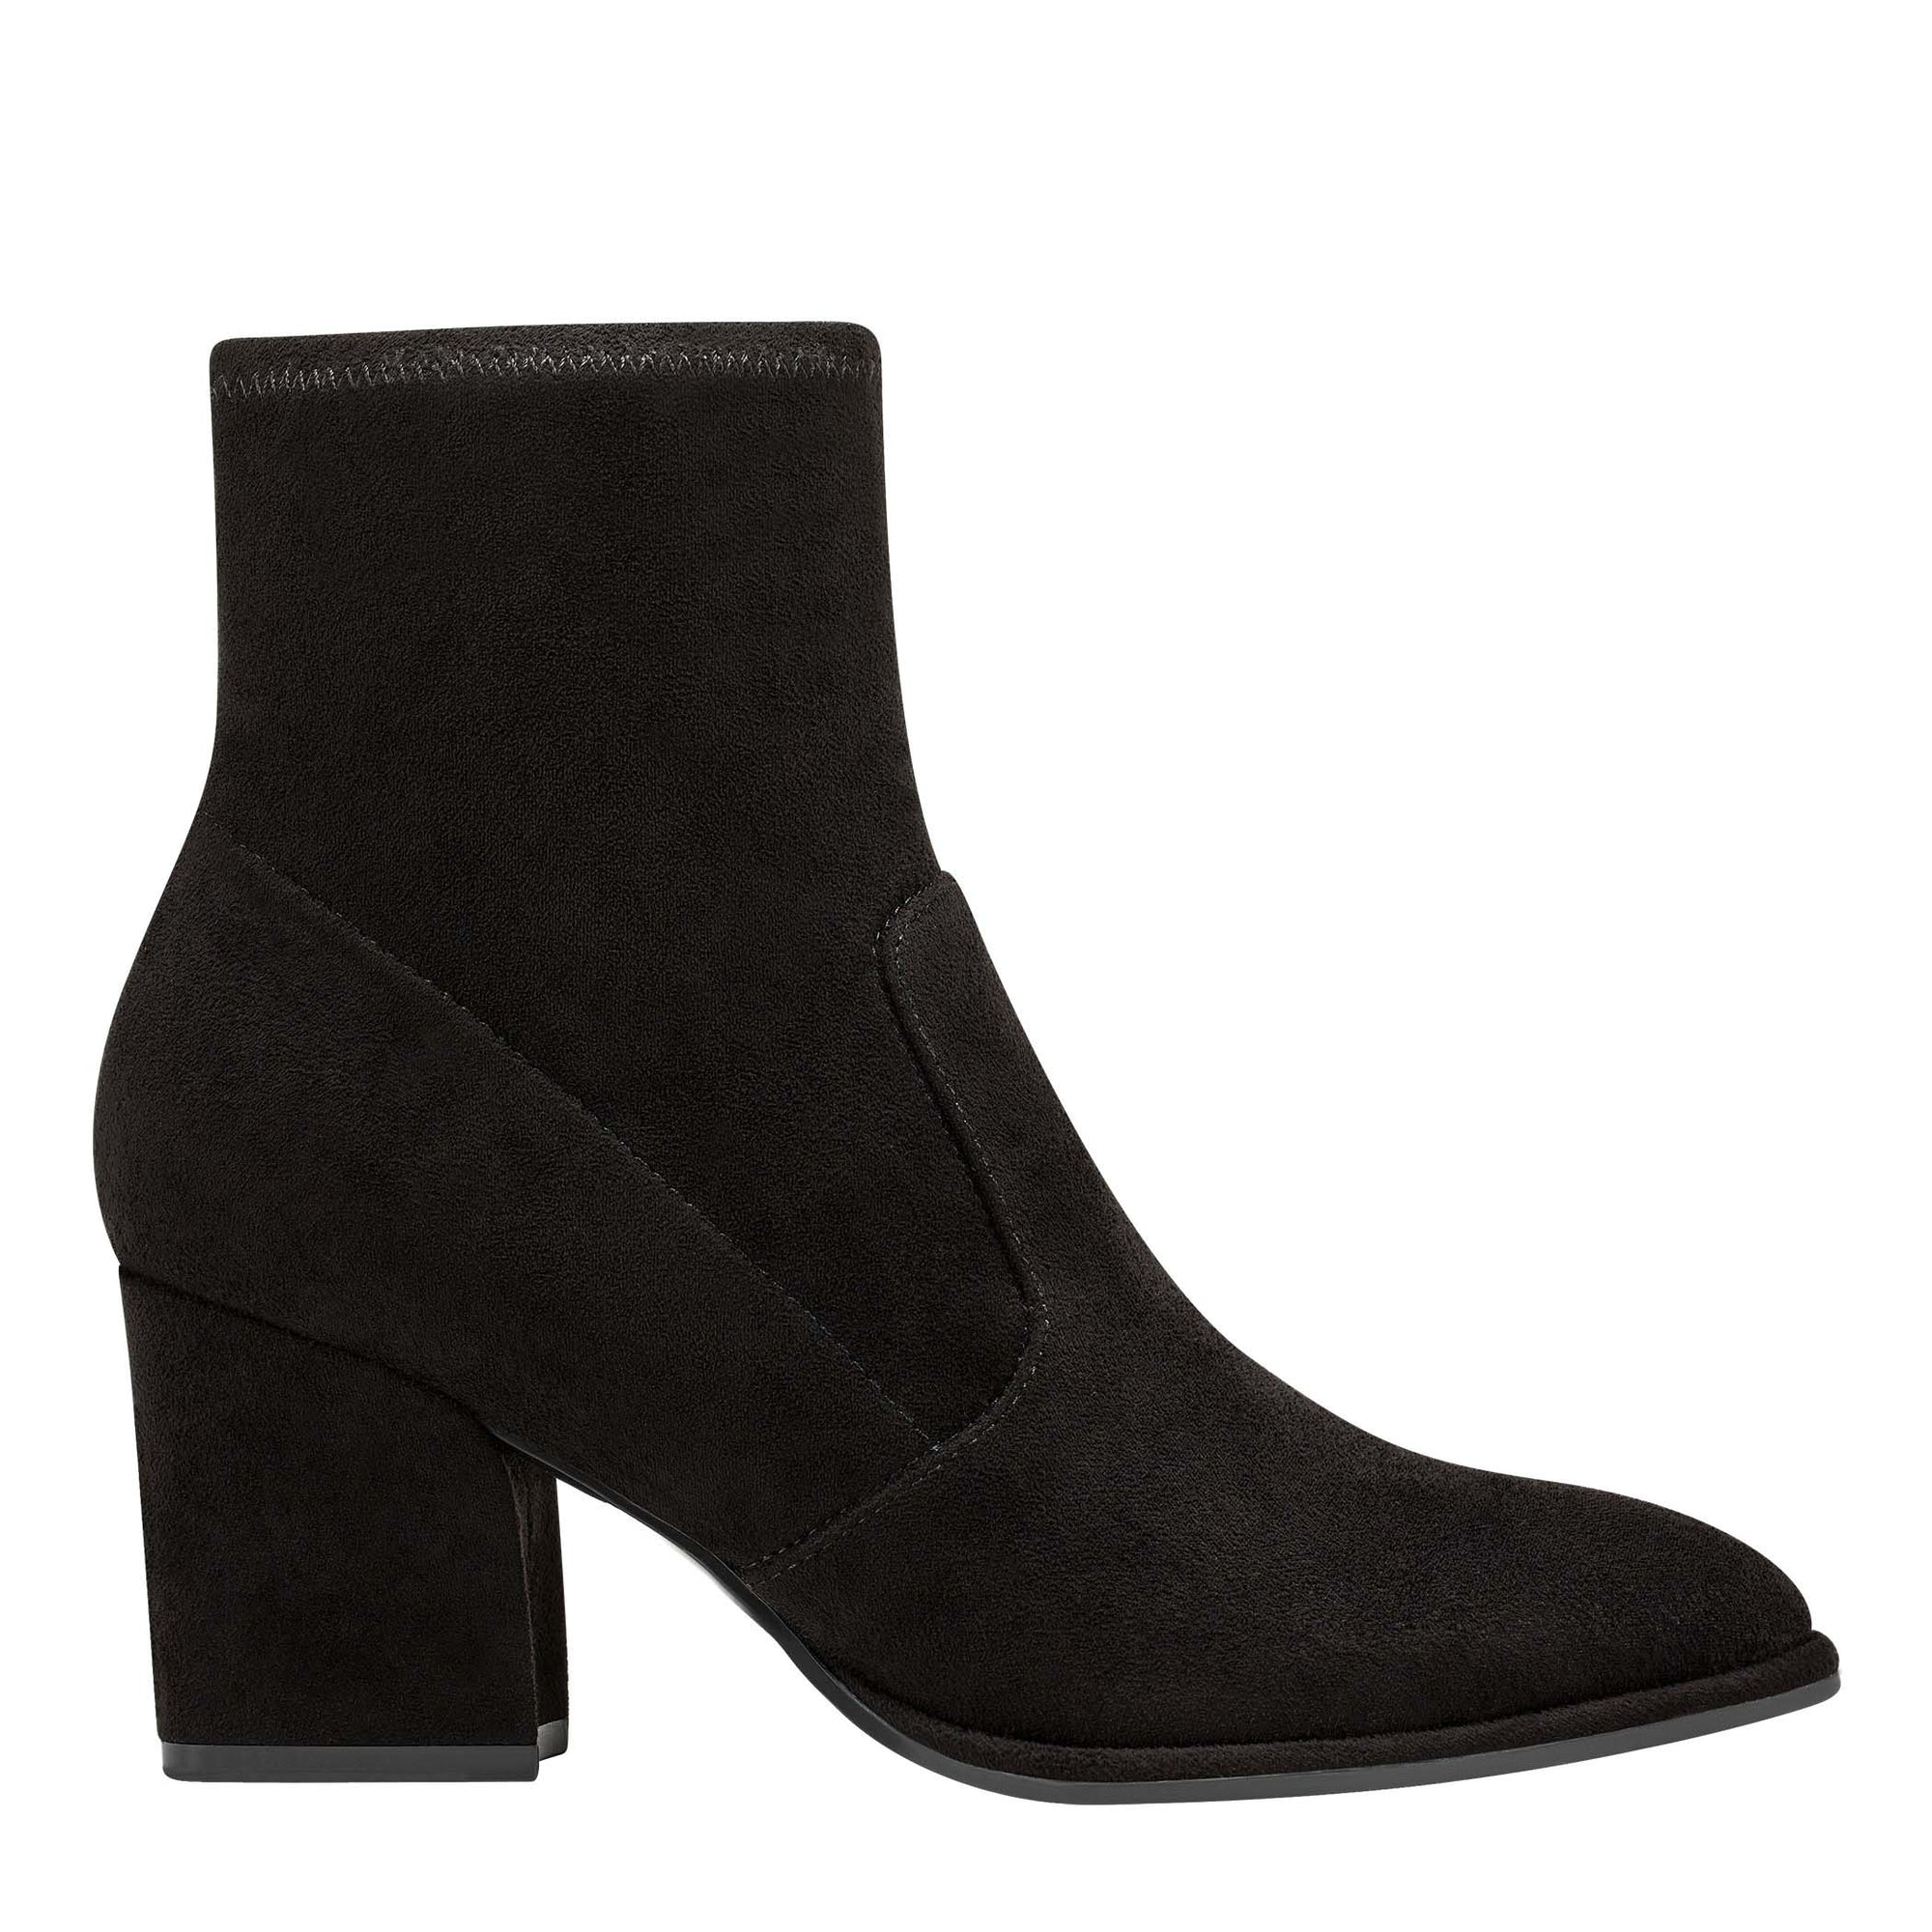 Leave Heeled Bootie